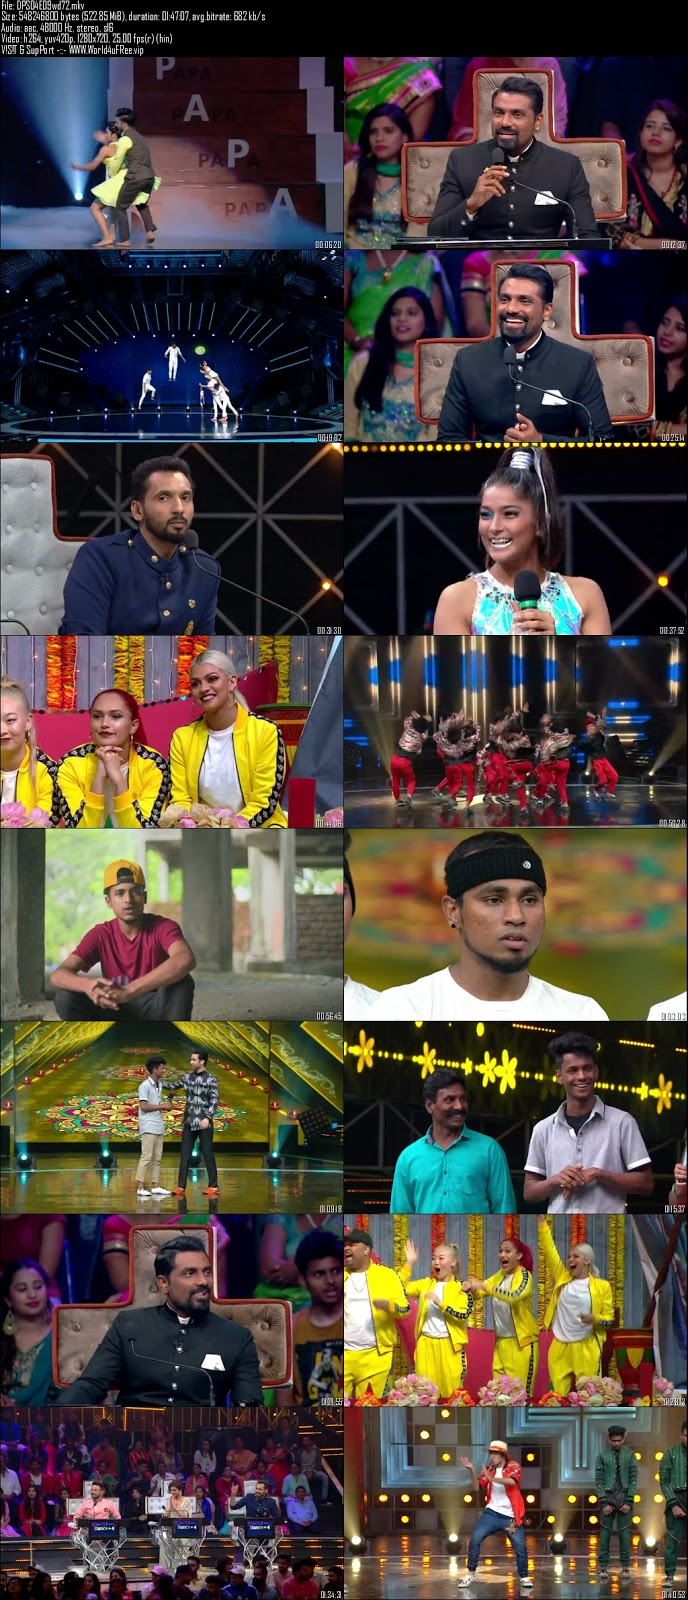 Dance Plus S4 03 November 2018 720p HDTV 500Mb x264 world4ufree.fun tv show Dance Plus 4 2018 hindi tv show Dance Plus 4 2018 Season 4 Star Plus tv show compressed small size free download or watch online at world4ufree.fun